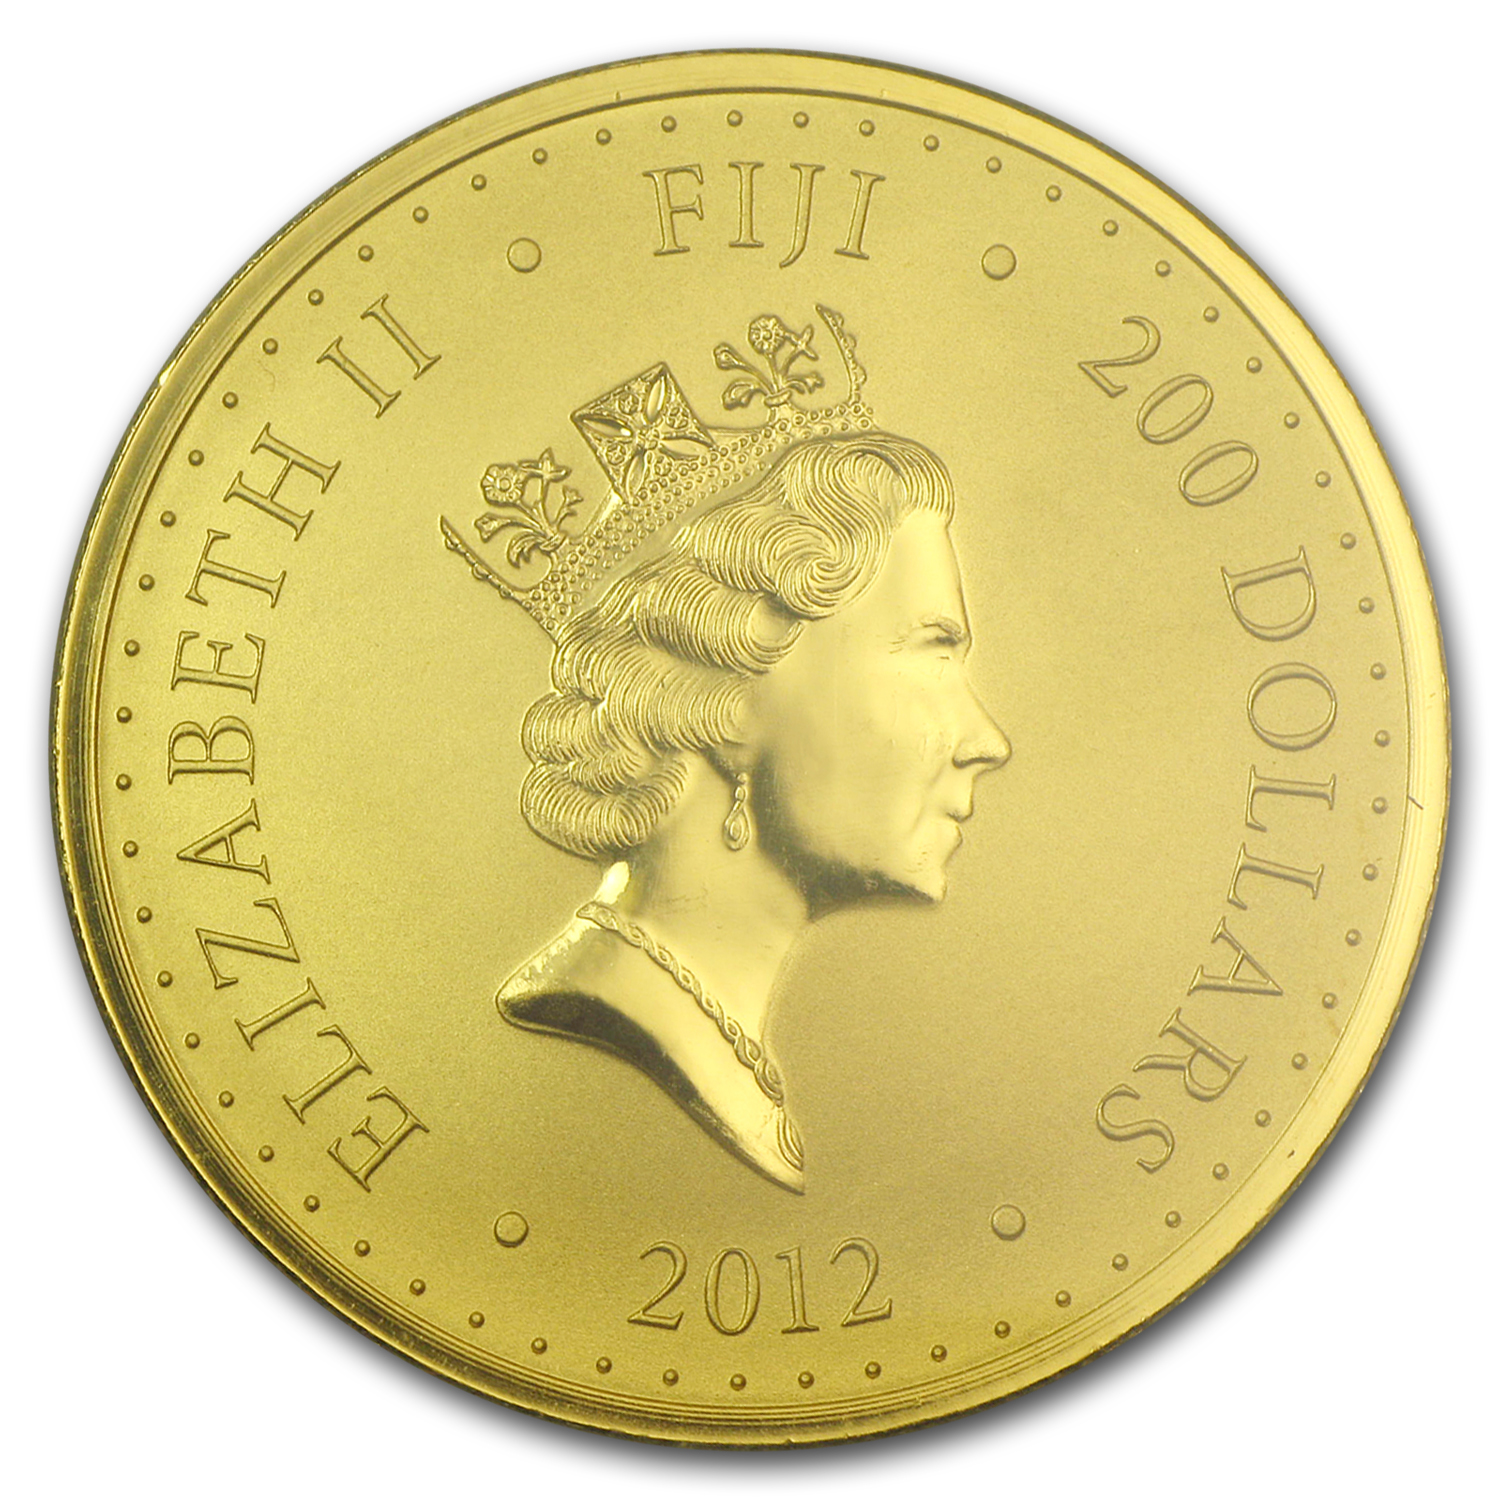 2012 Fiji 1 oz Gold $200 Pacific Sovereign BU (In Assay Card)